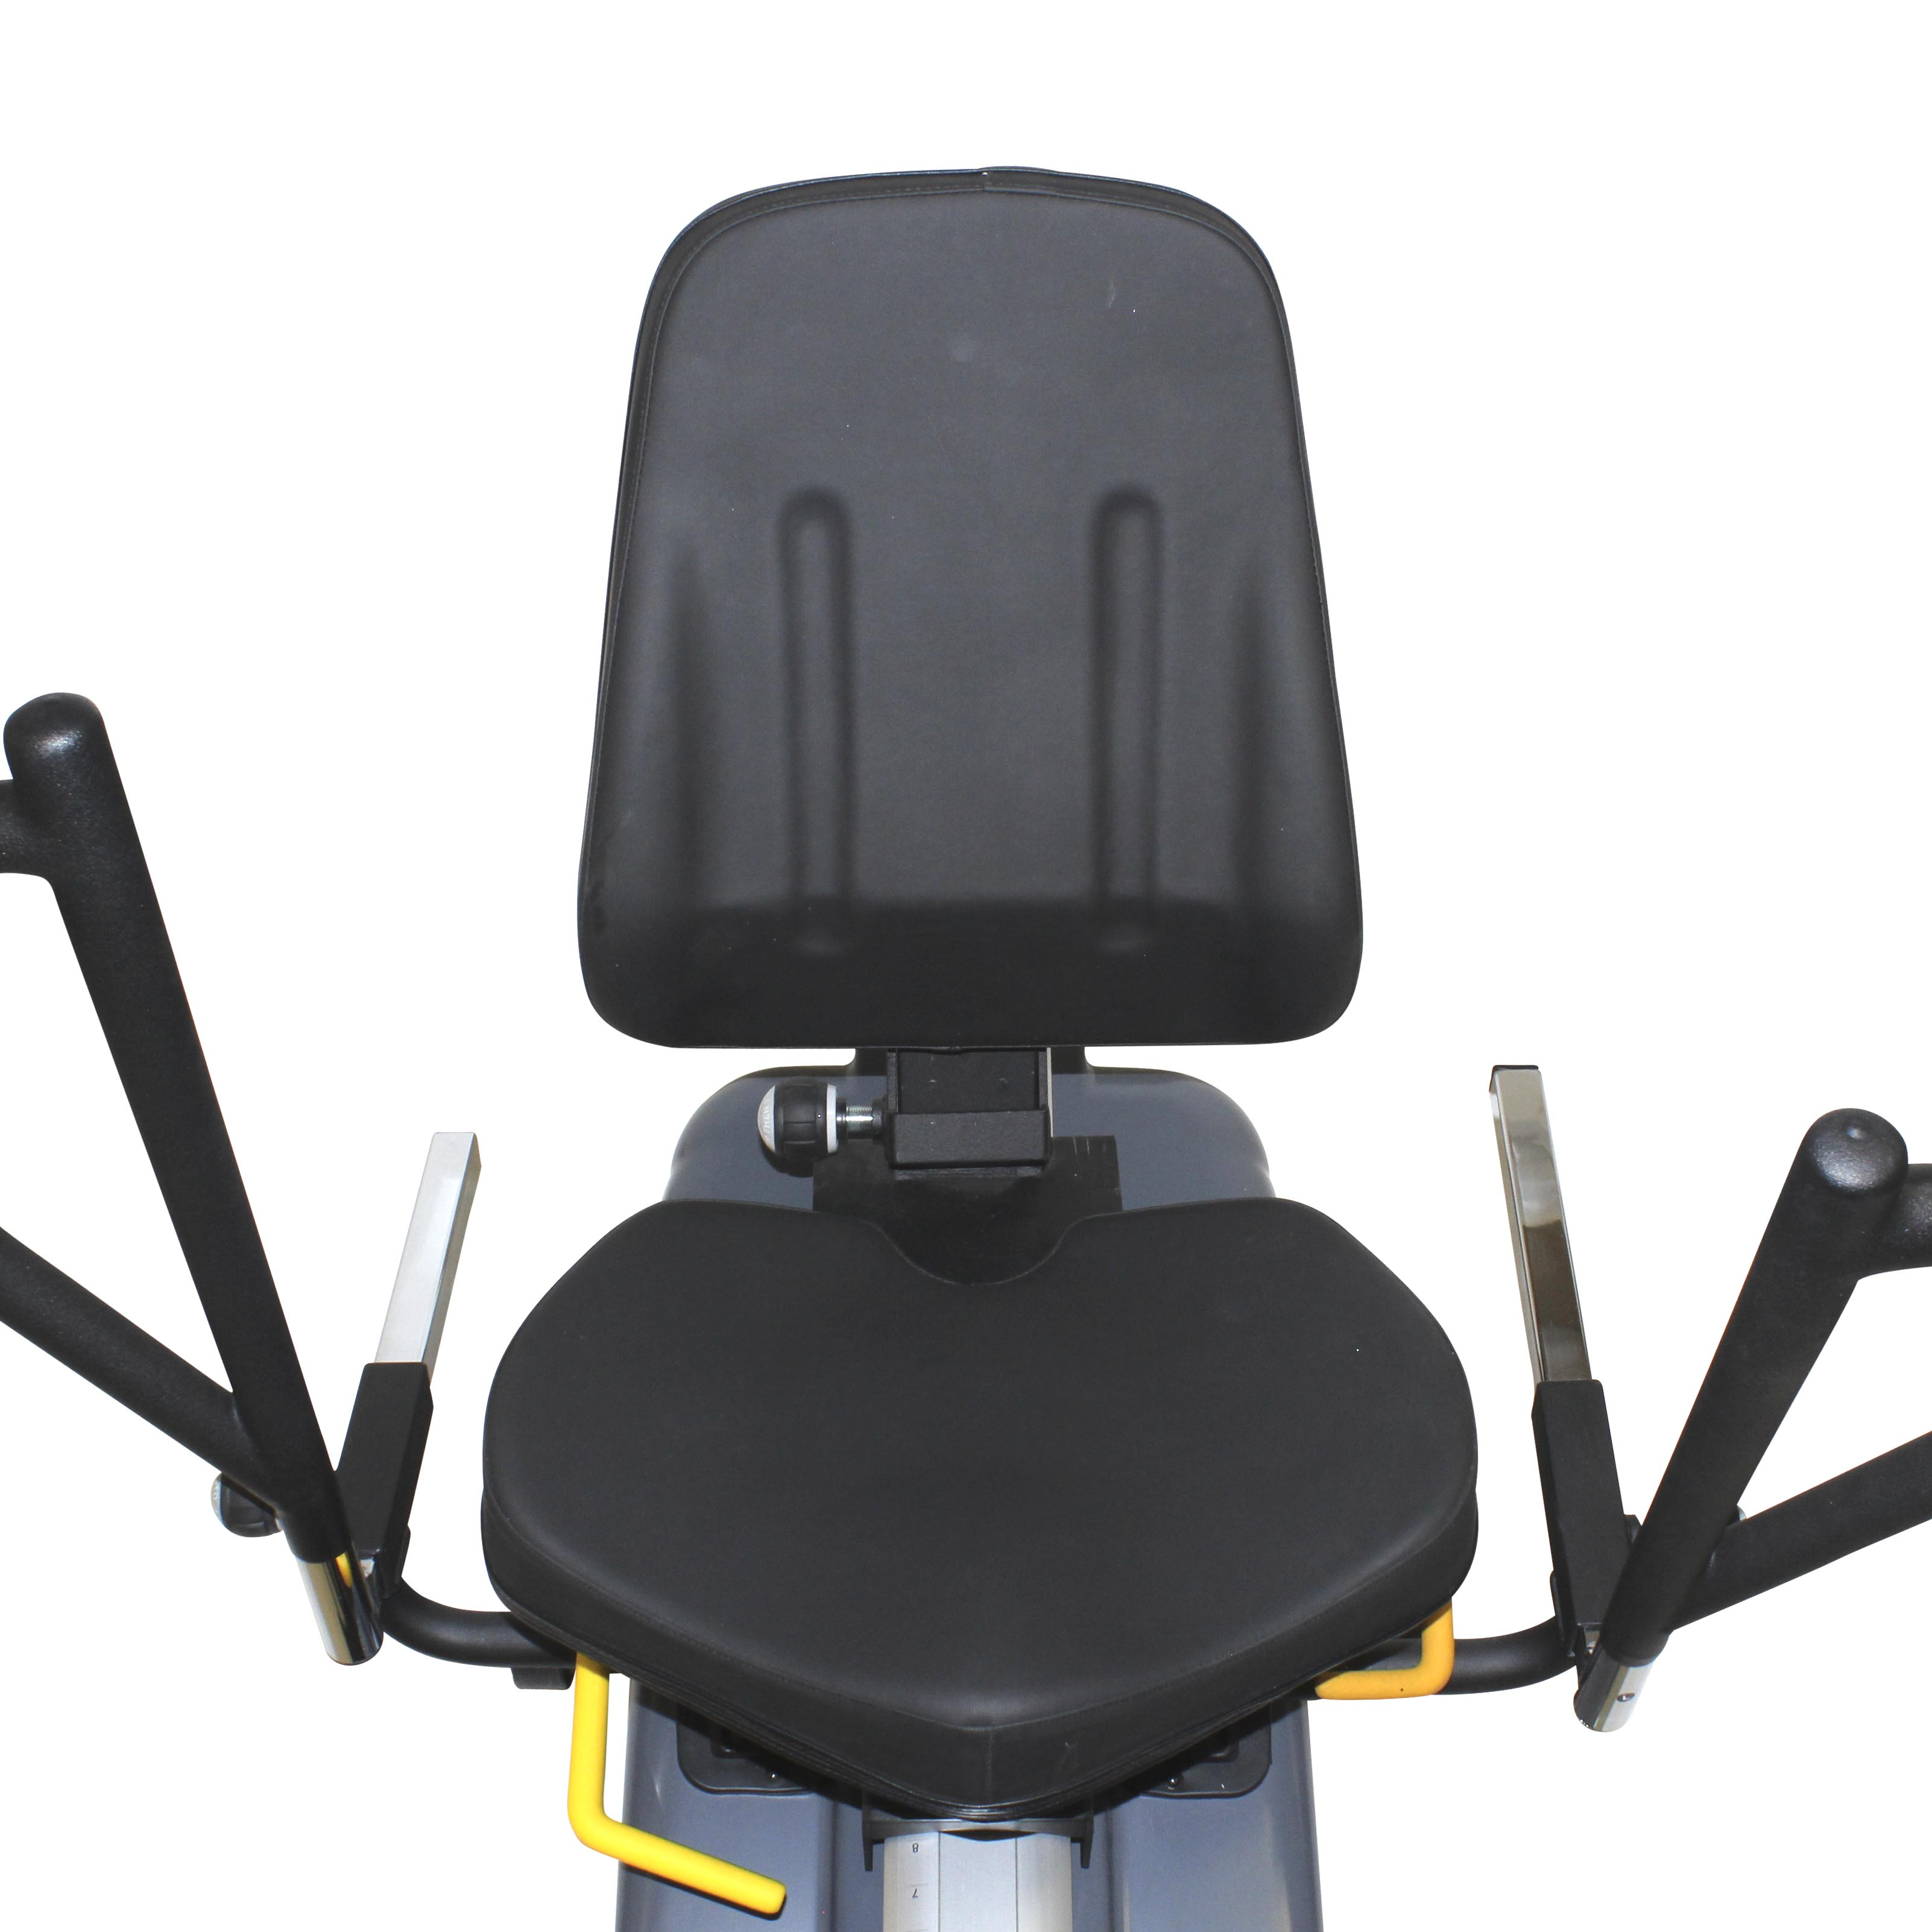 PhysioStep MDX Seat